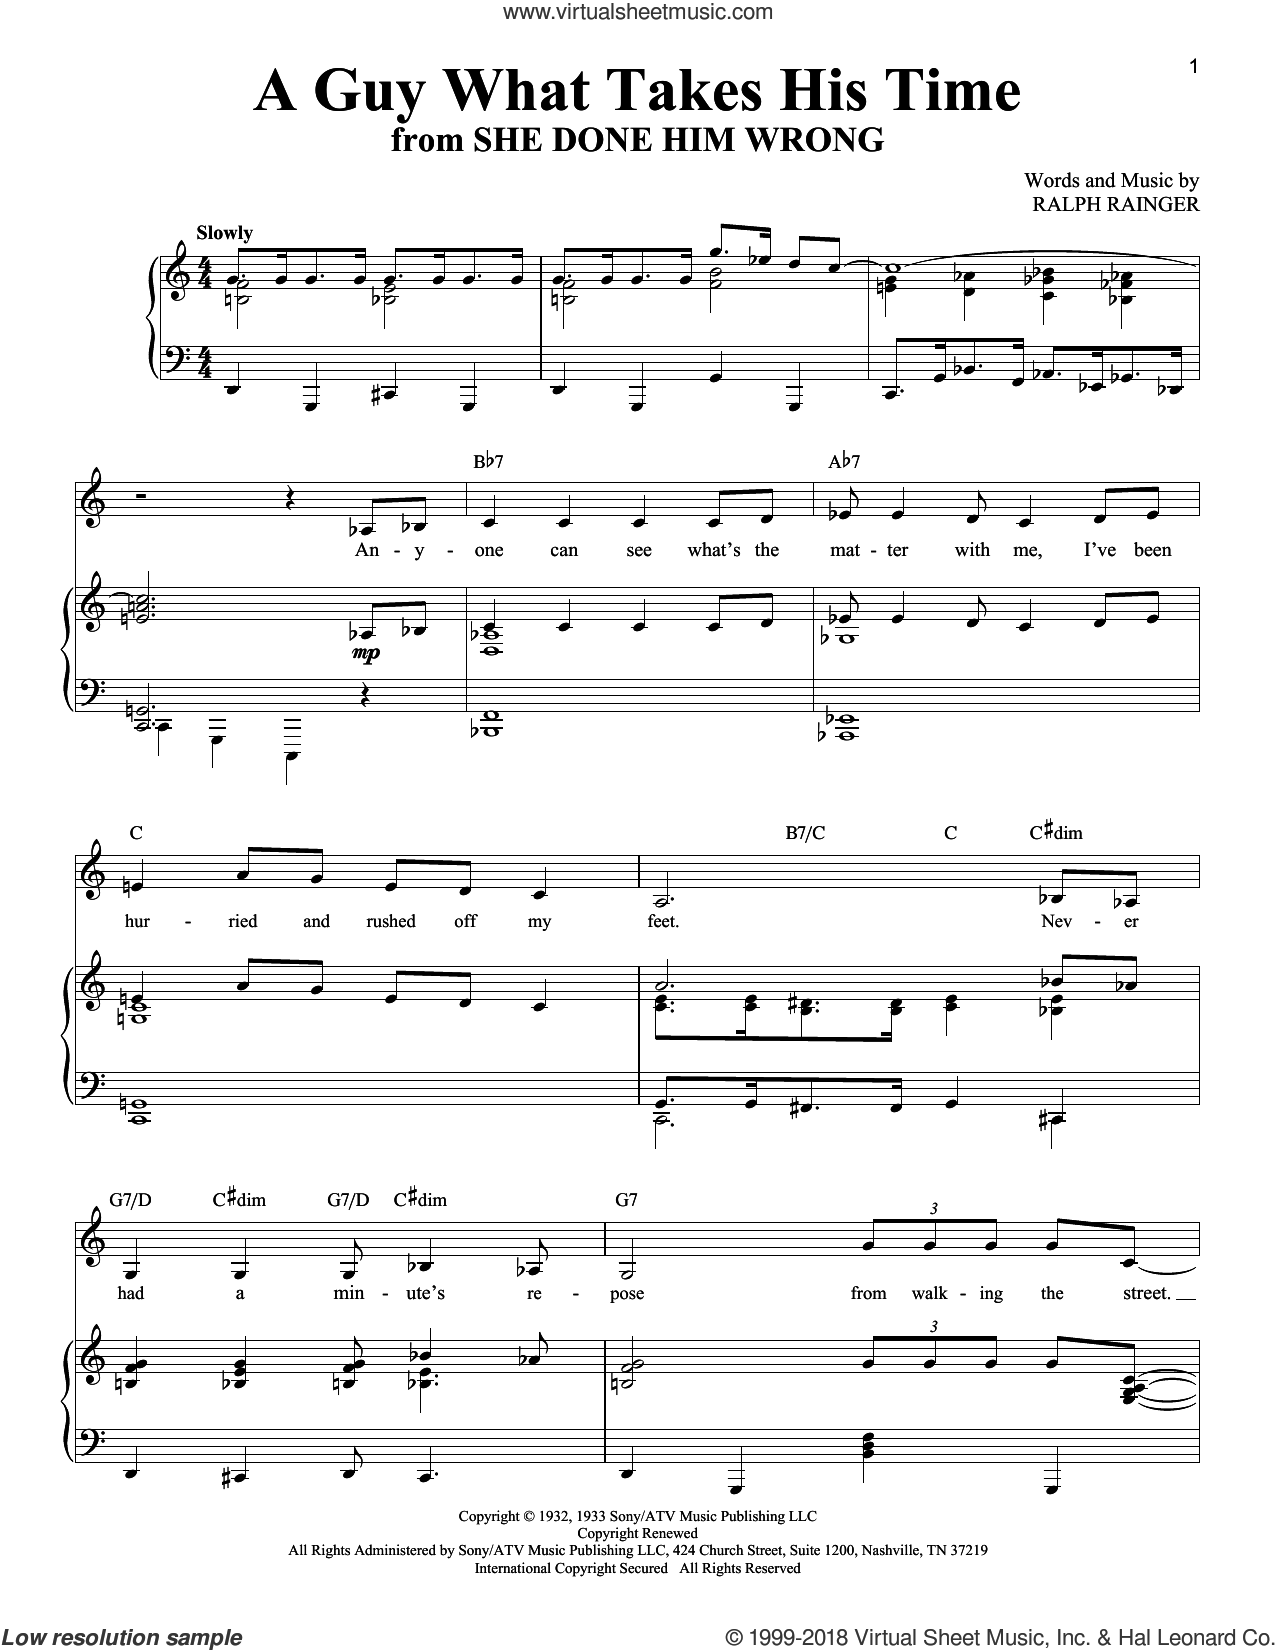 A Guy What Takes His Time sheet music for voice and piano by Mae West and Ralph Rainger, intermediate skill level